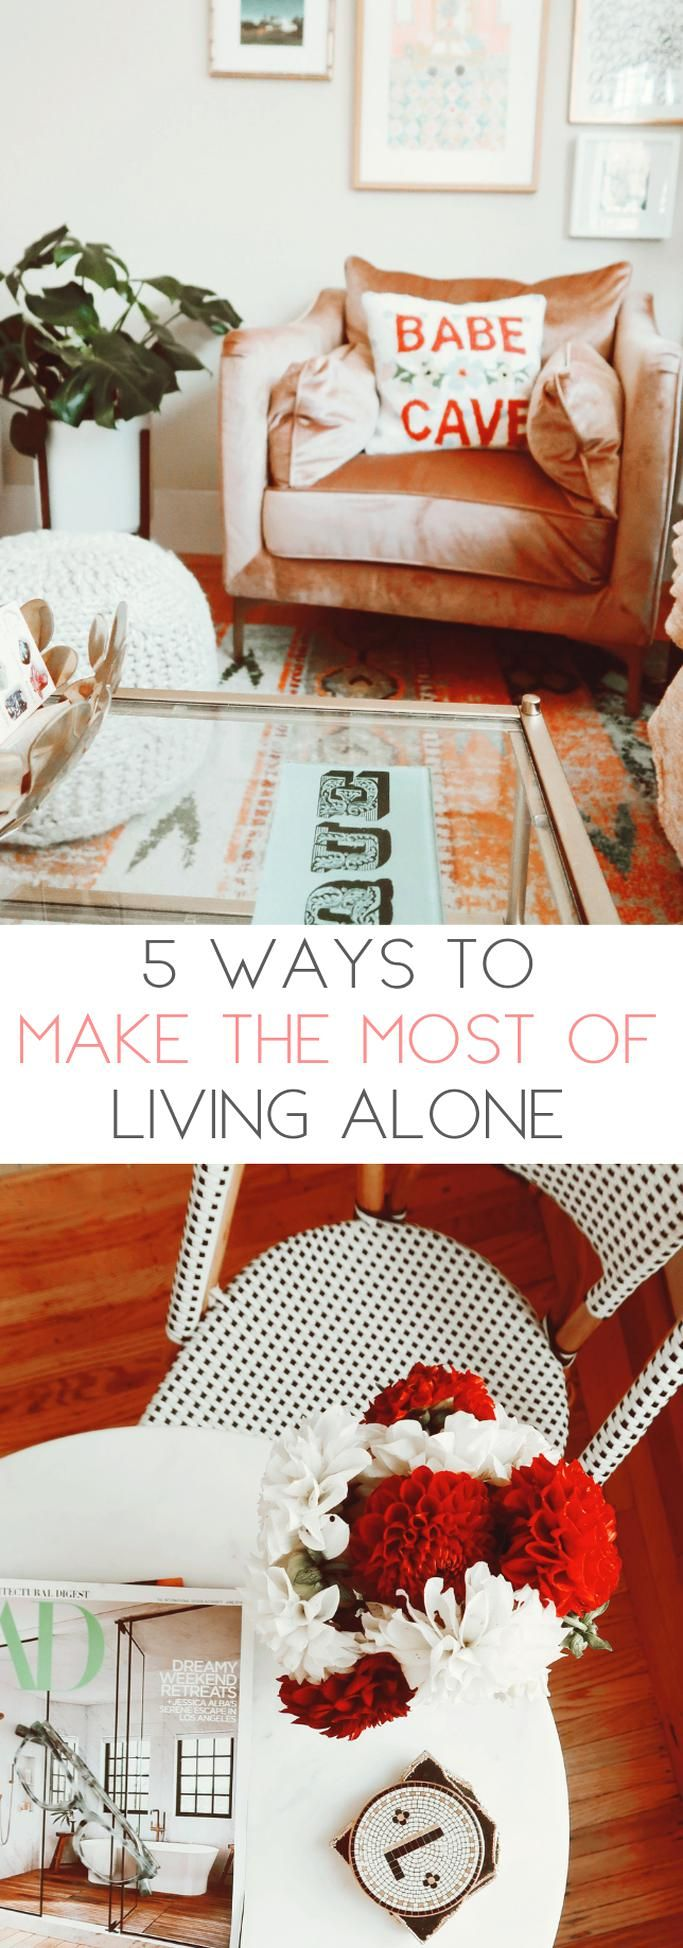 5 Ways To Make The Most Of Living Alone Are You Planning On Living Alone Or Are You Living Alone For The Firs In 2020 Living Alone My First Apartment Living Alone Tips